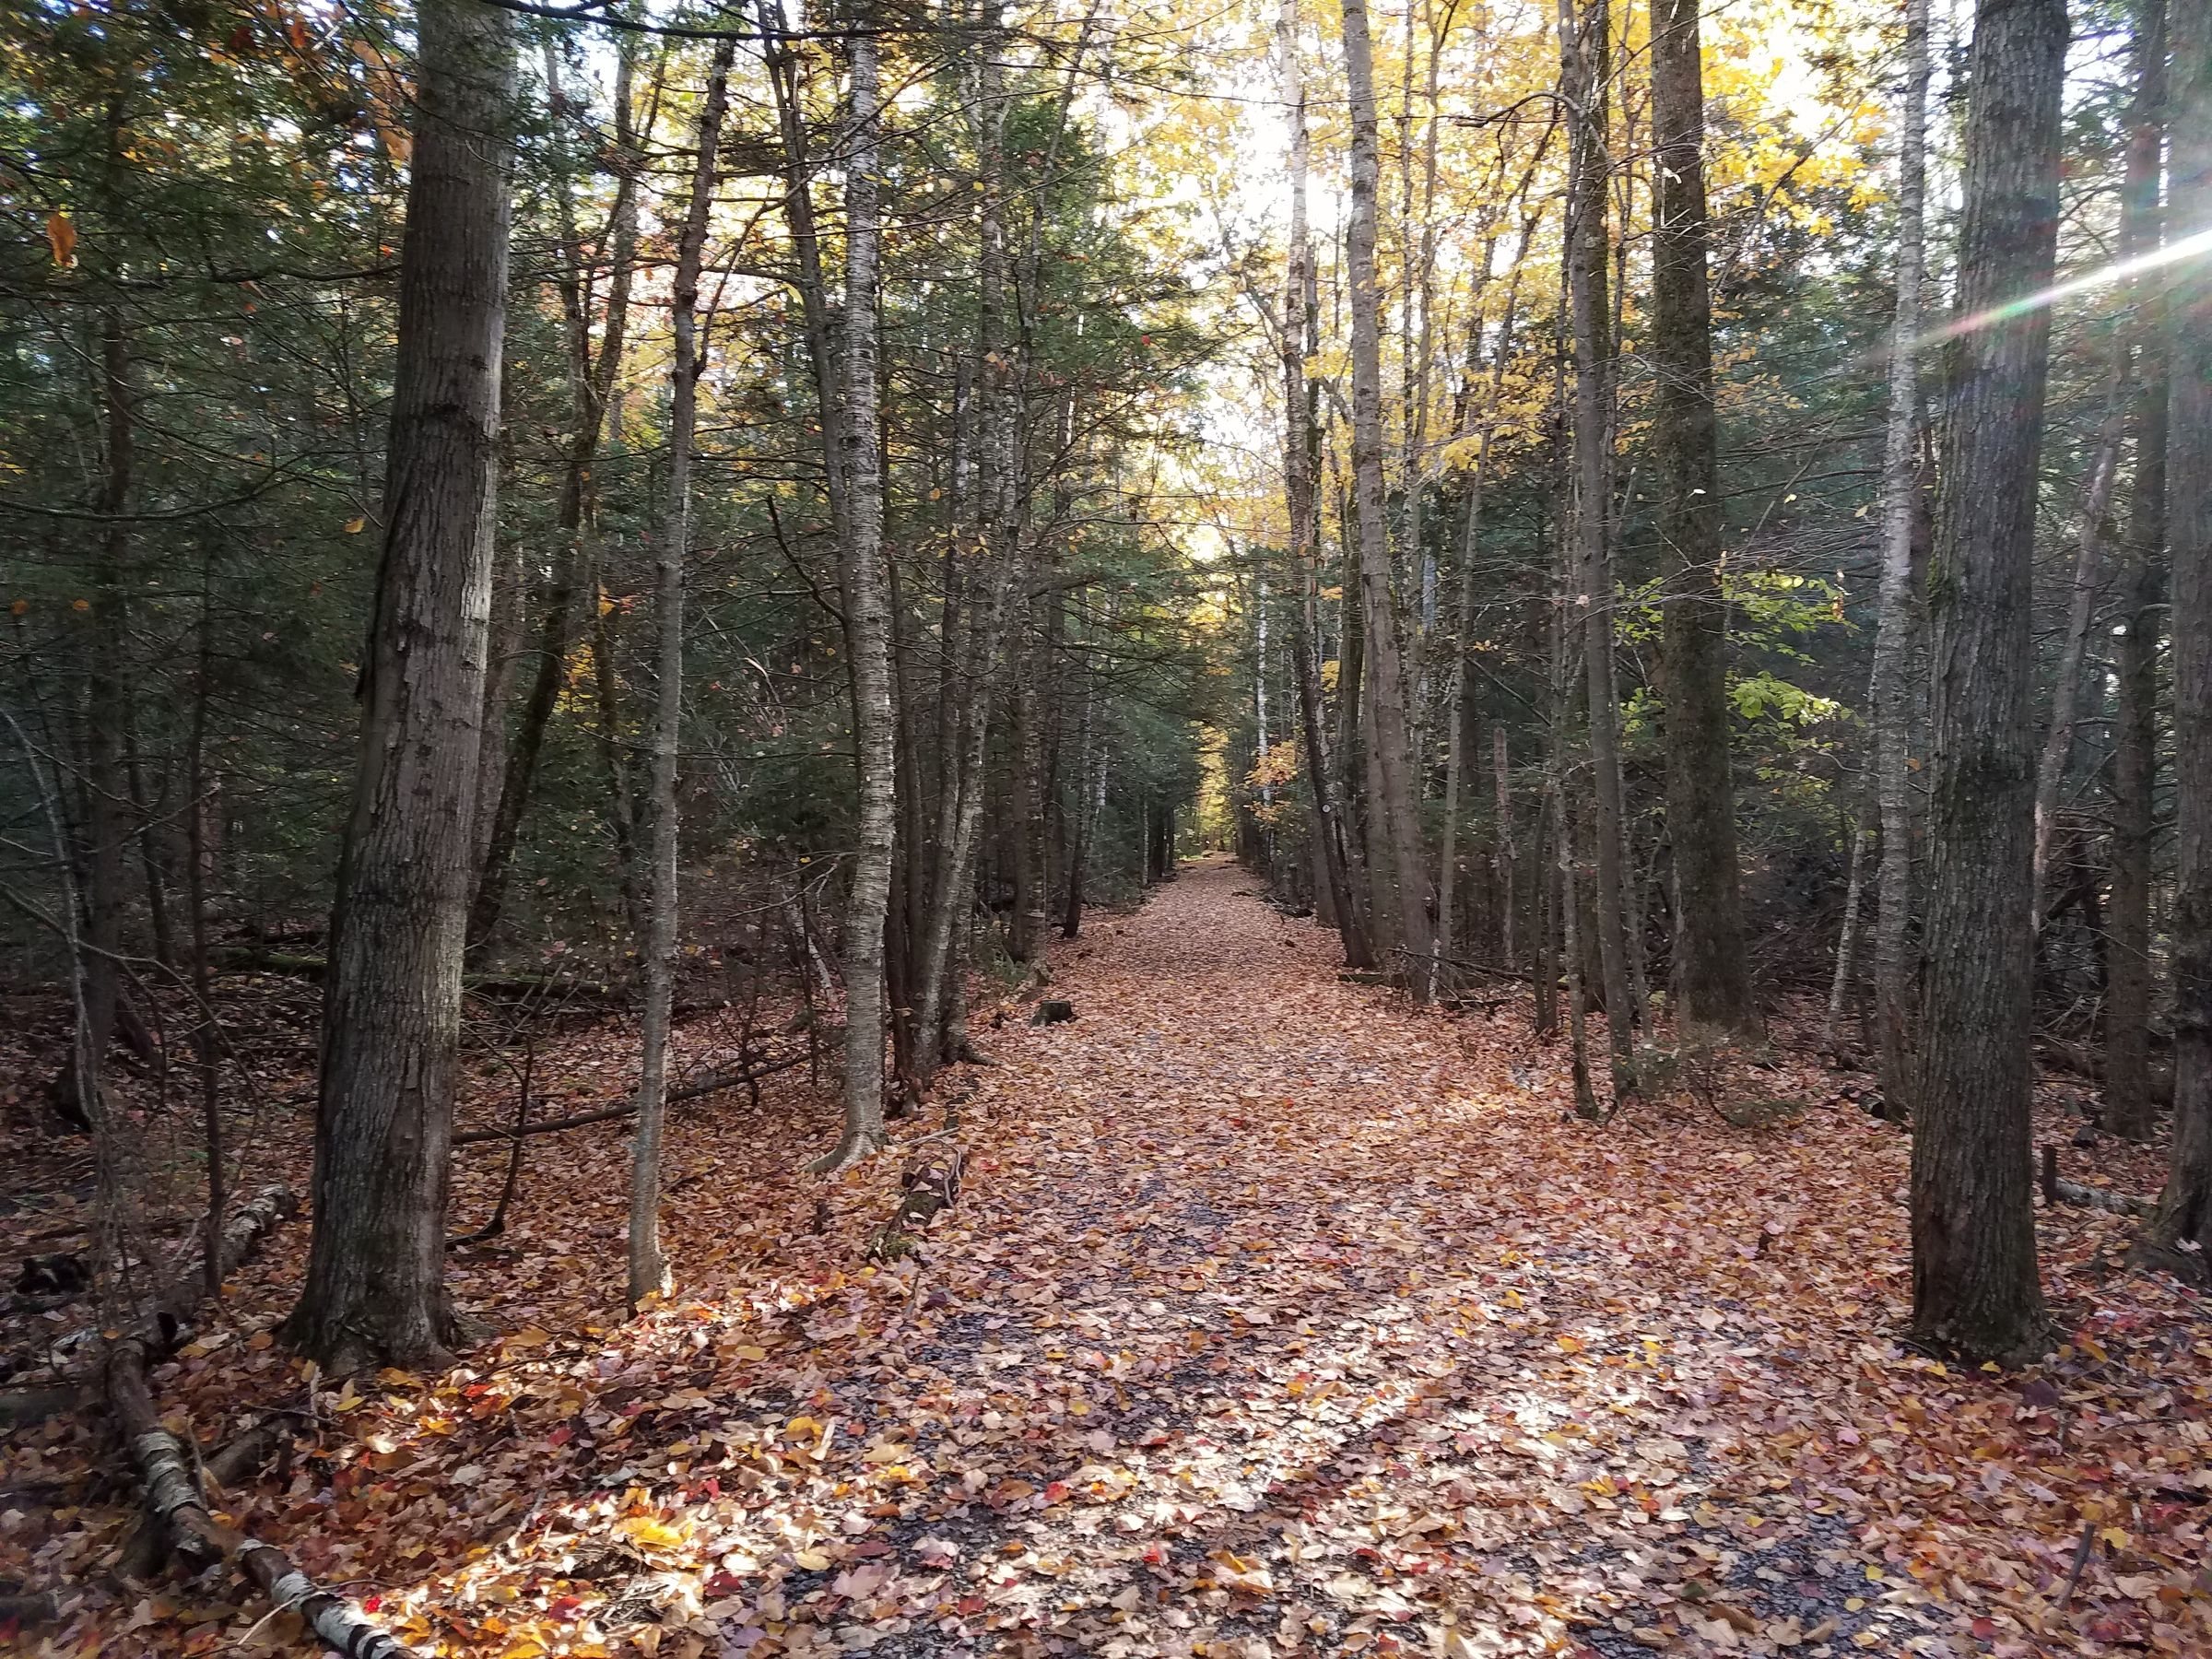 A walking trail through a forest in the morning. The trail is very straight, and no plants encroach on it at all, despite being heavily wooded on both sides. The trees are mostly evergreen conifers and birch trees, and the ground is covered in fallen orange leaves.